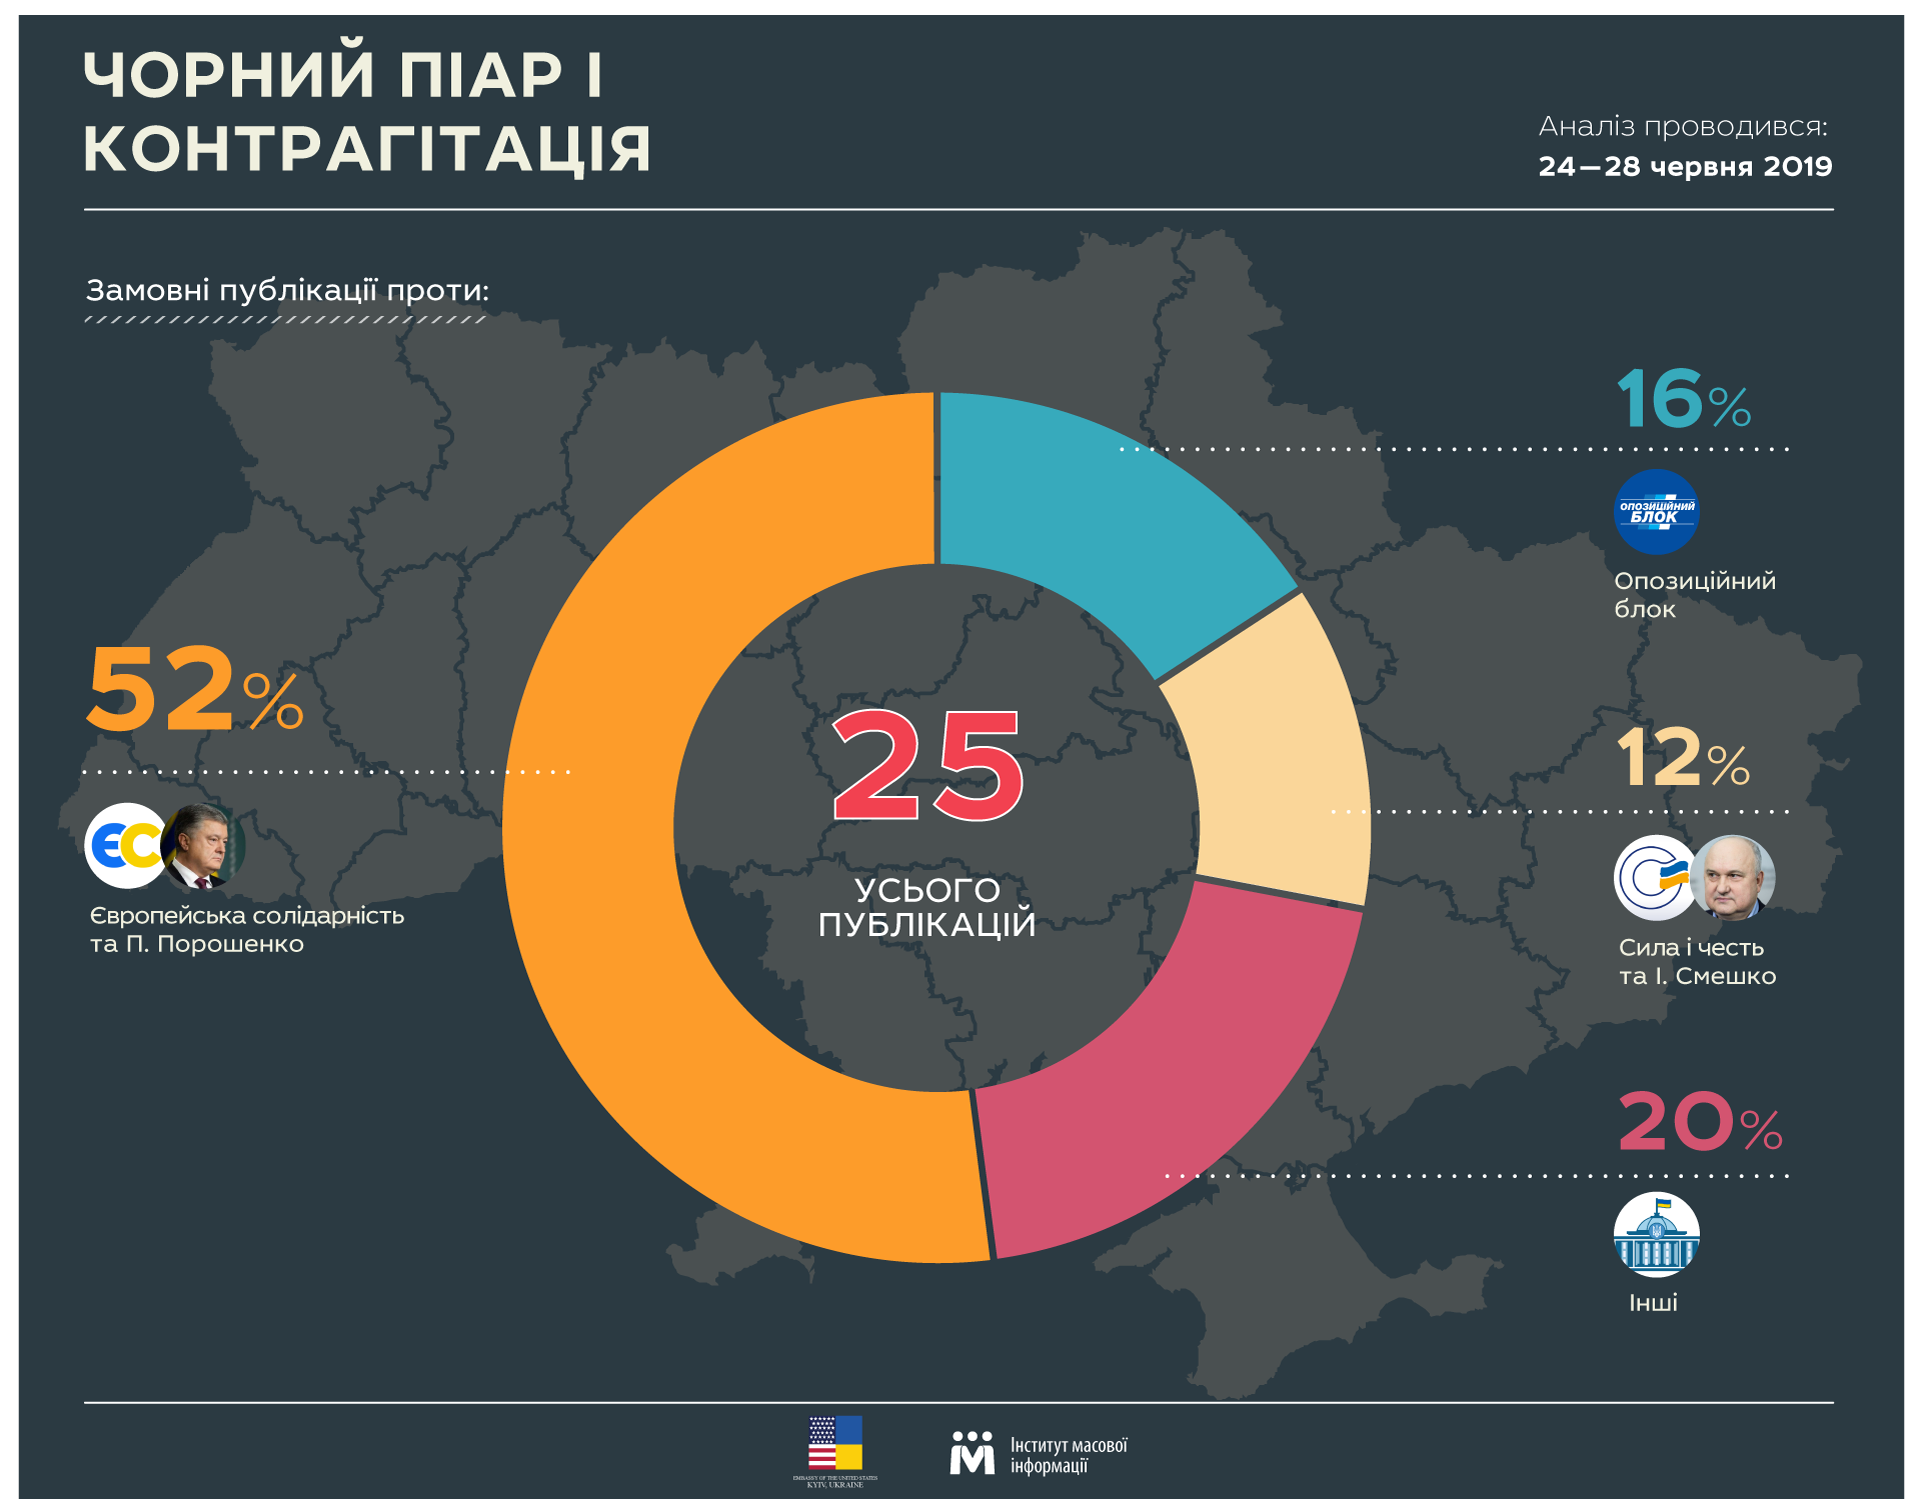 Black PR in web-based editions: Poroshenko, Opposition block